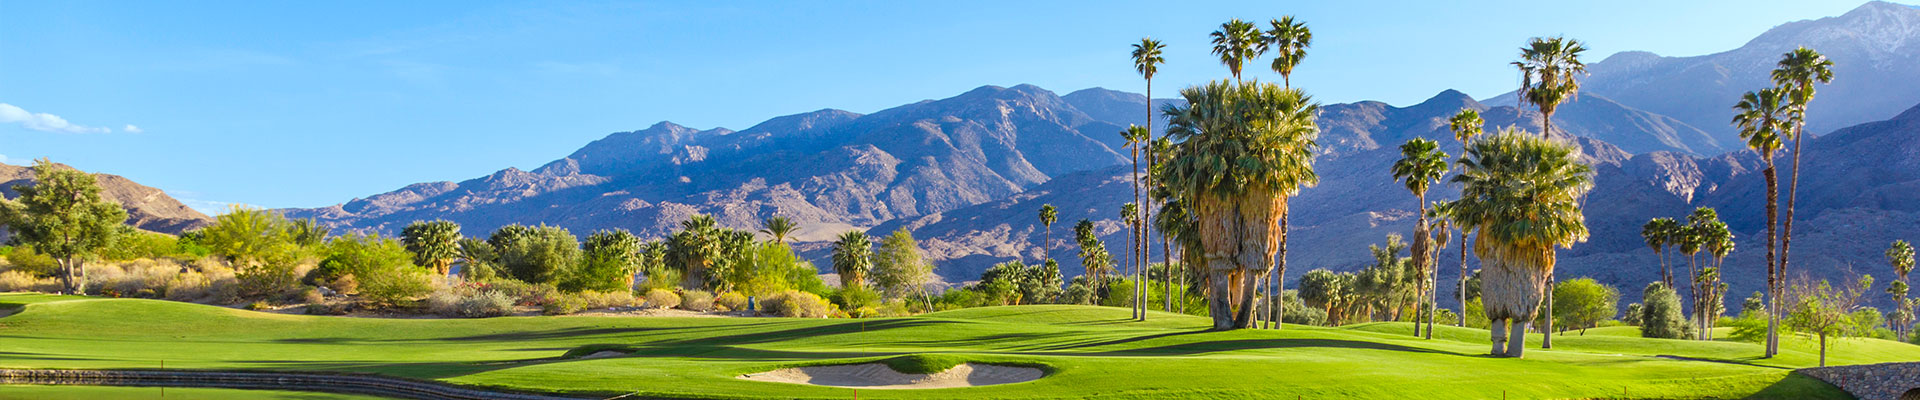 Fantasy RV Tours: 6 Day Palm Springs Valley Bash (06URRP-110920)